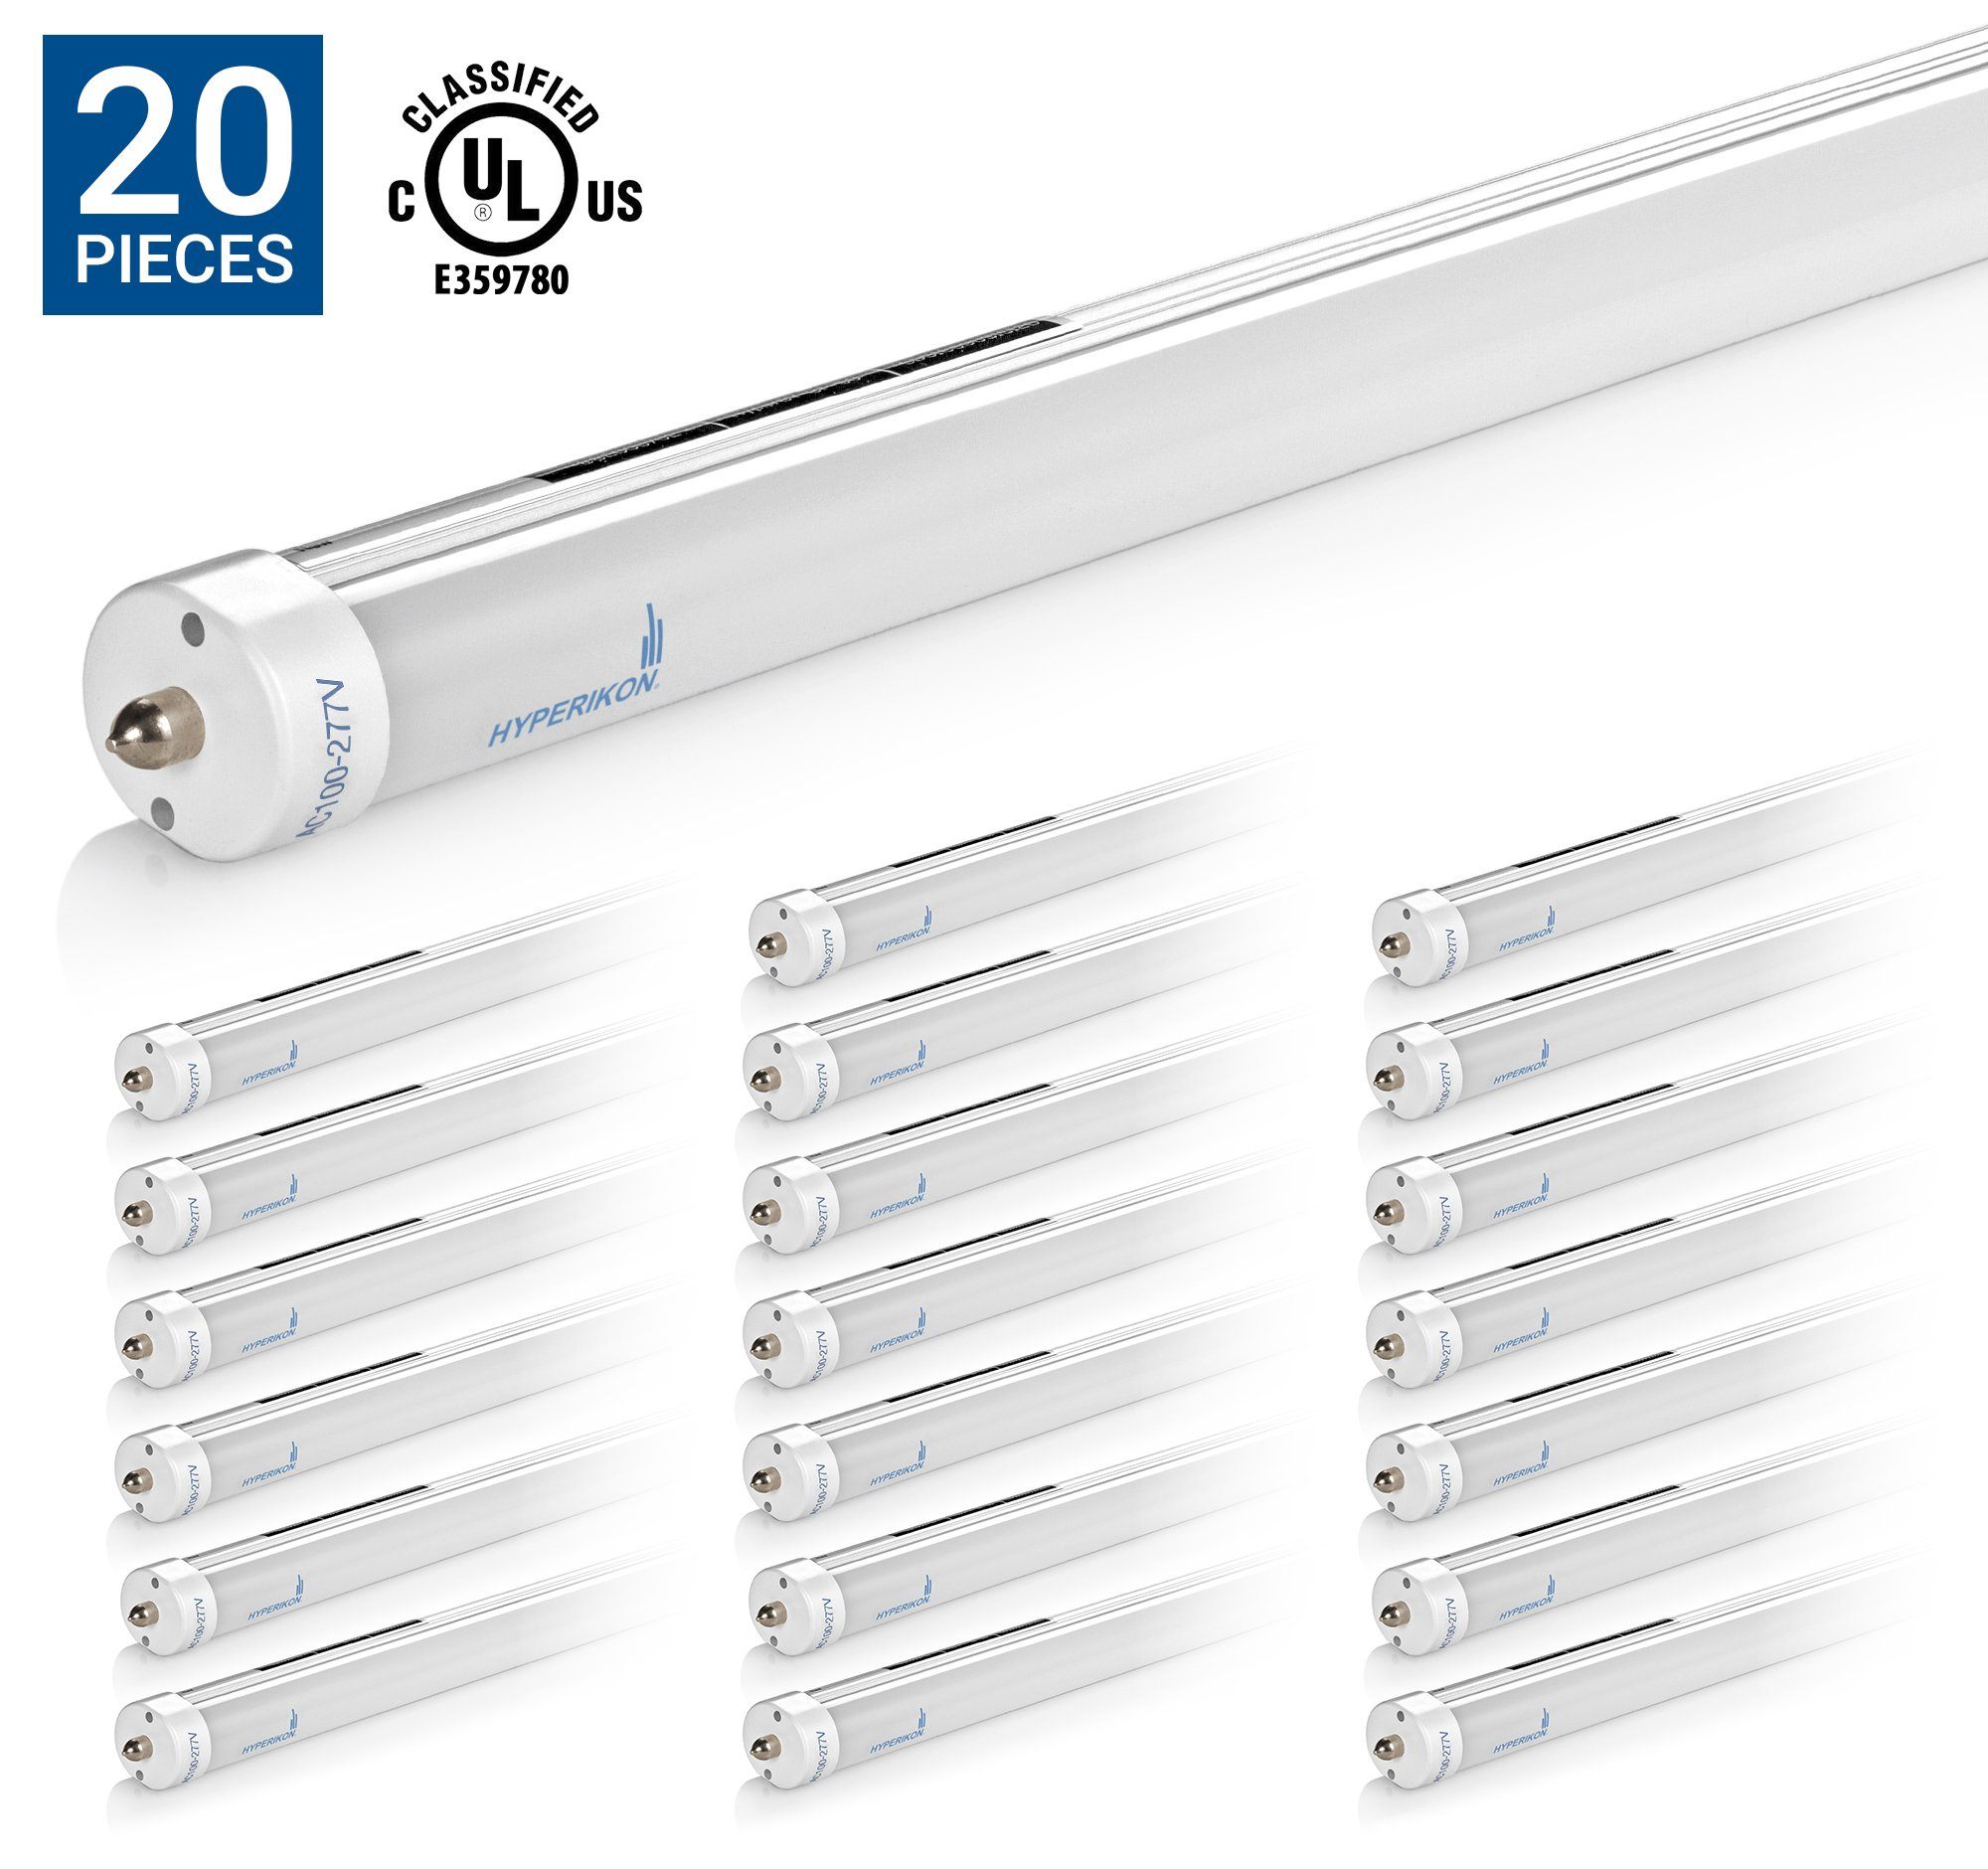 HyperSelect T8 T12 LED Light Tube 8ft, 36W (75W equivalent), 3800 Lumen, 5000K (Crystal White Glow), UL, Frosted Cover, Dual-Ended Power, Fluorescent Replacement, (Pack of 20)